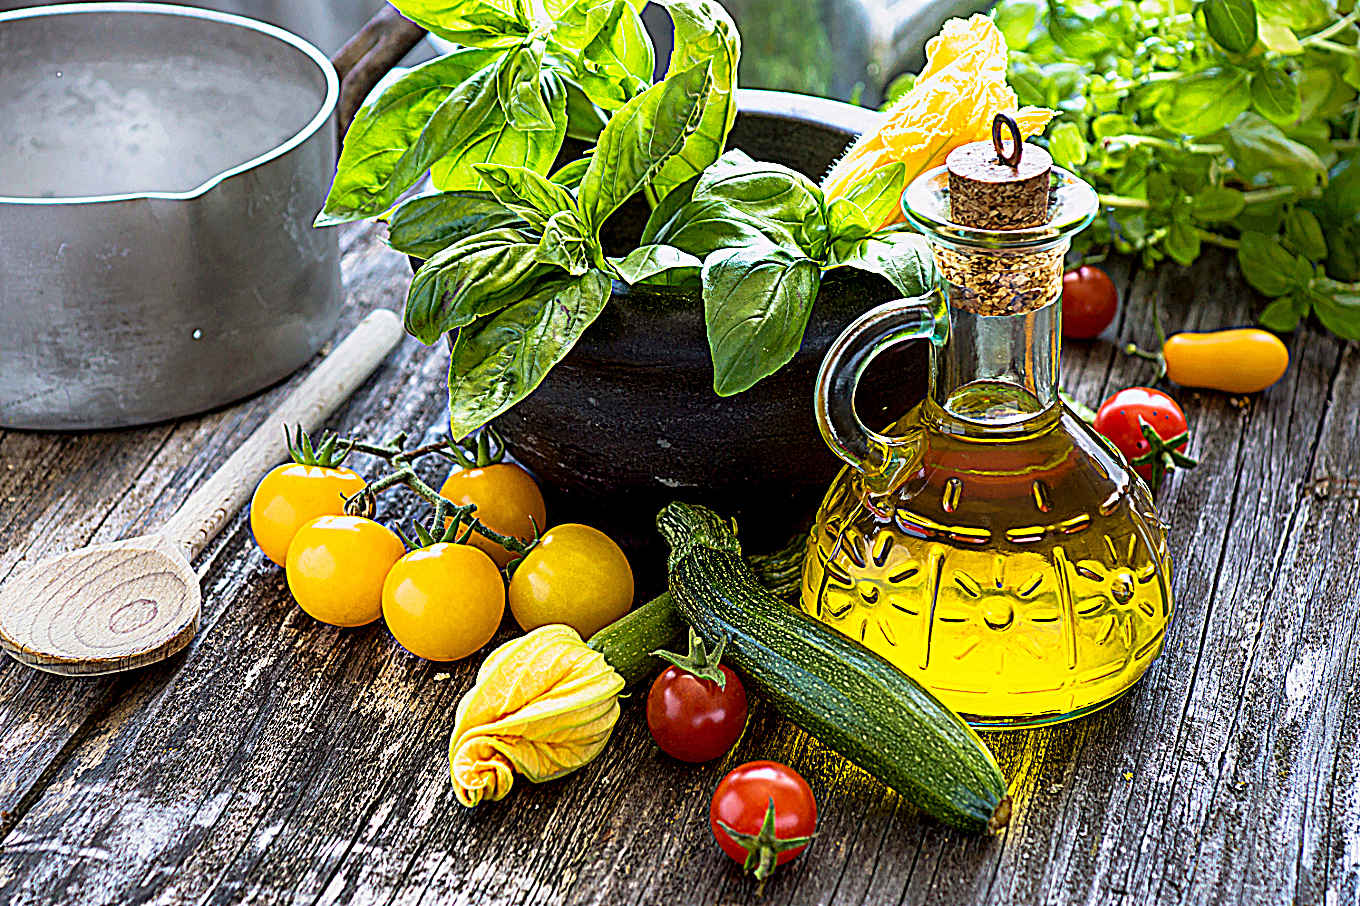 Why The Mediterranean Diet Was Ranked 2019's Top Diet